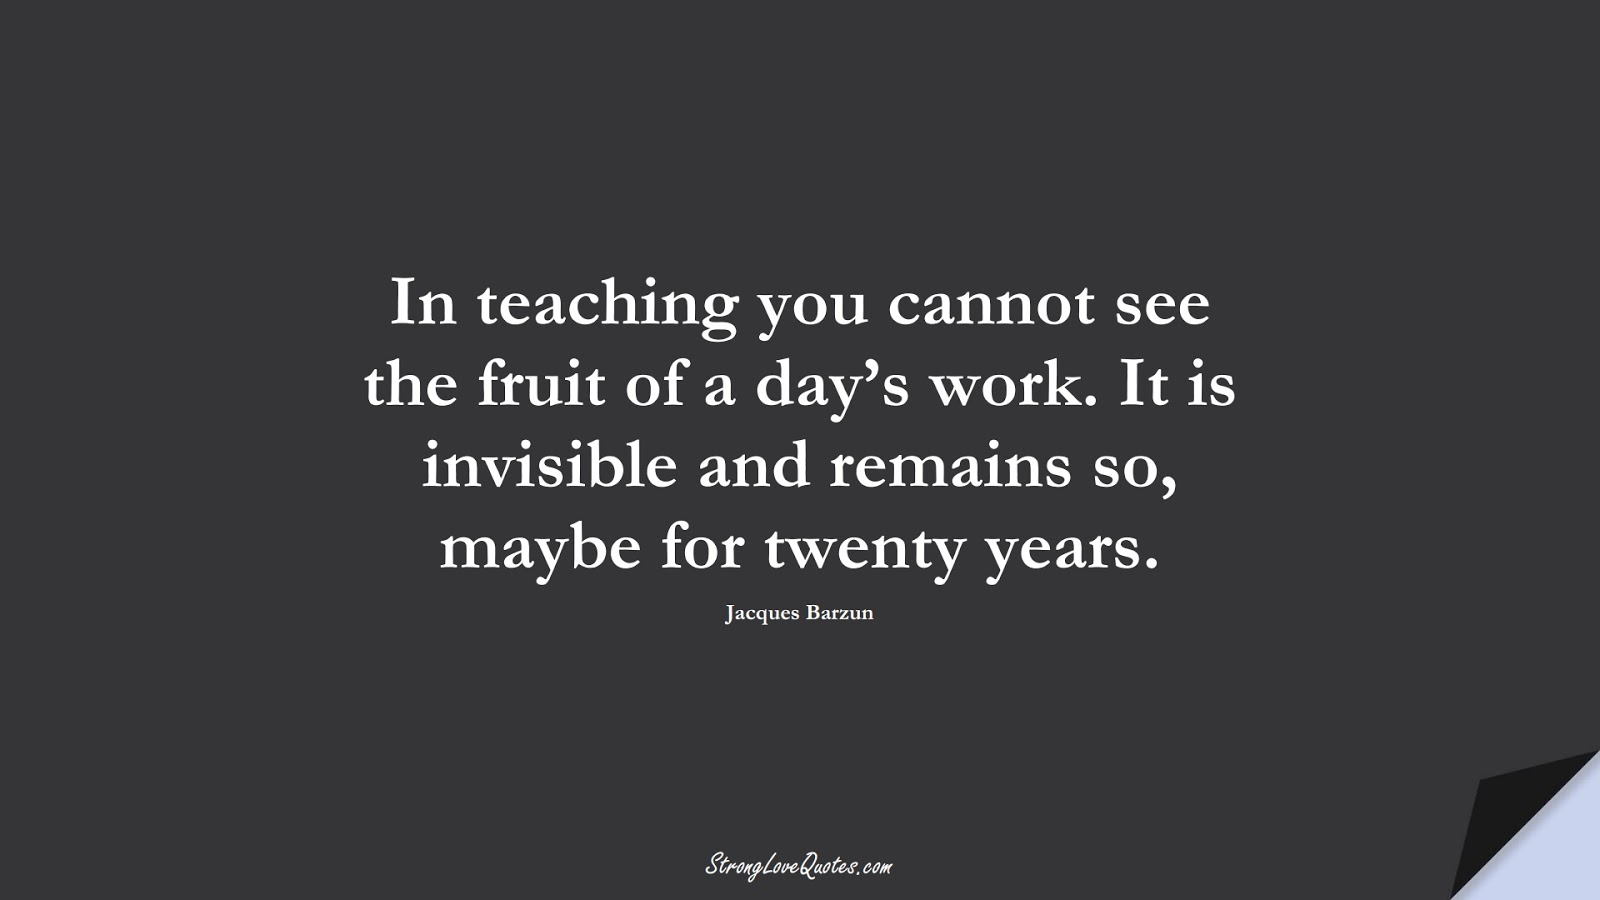 In teaching you cannot see the fruit of a day's work. It is invisible and remains so, maybe for twenty years. (Jacques Barzun);  #EducationQuotes